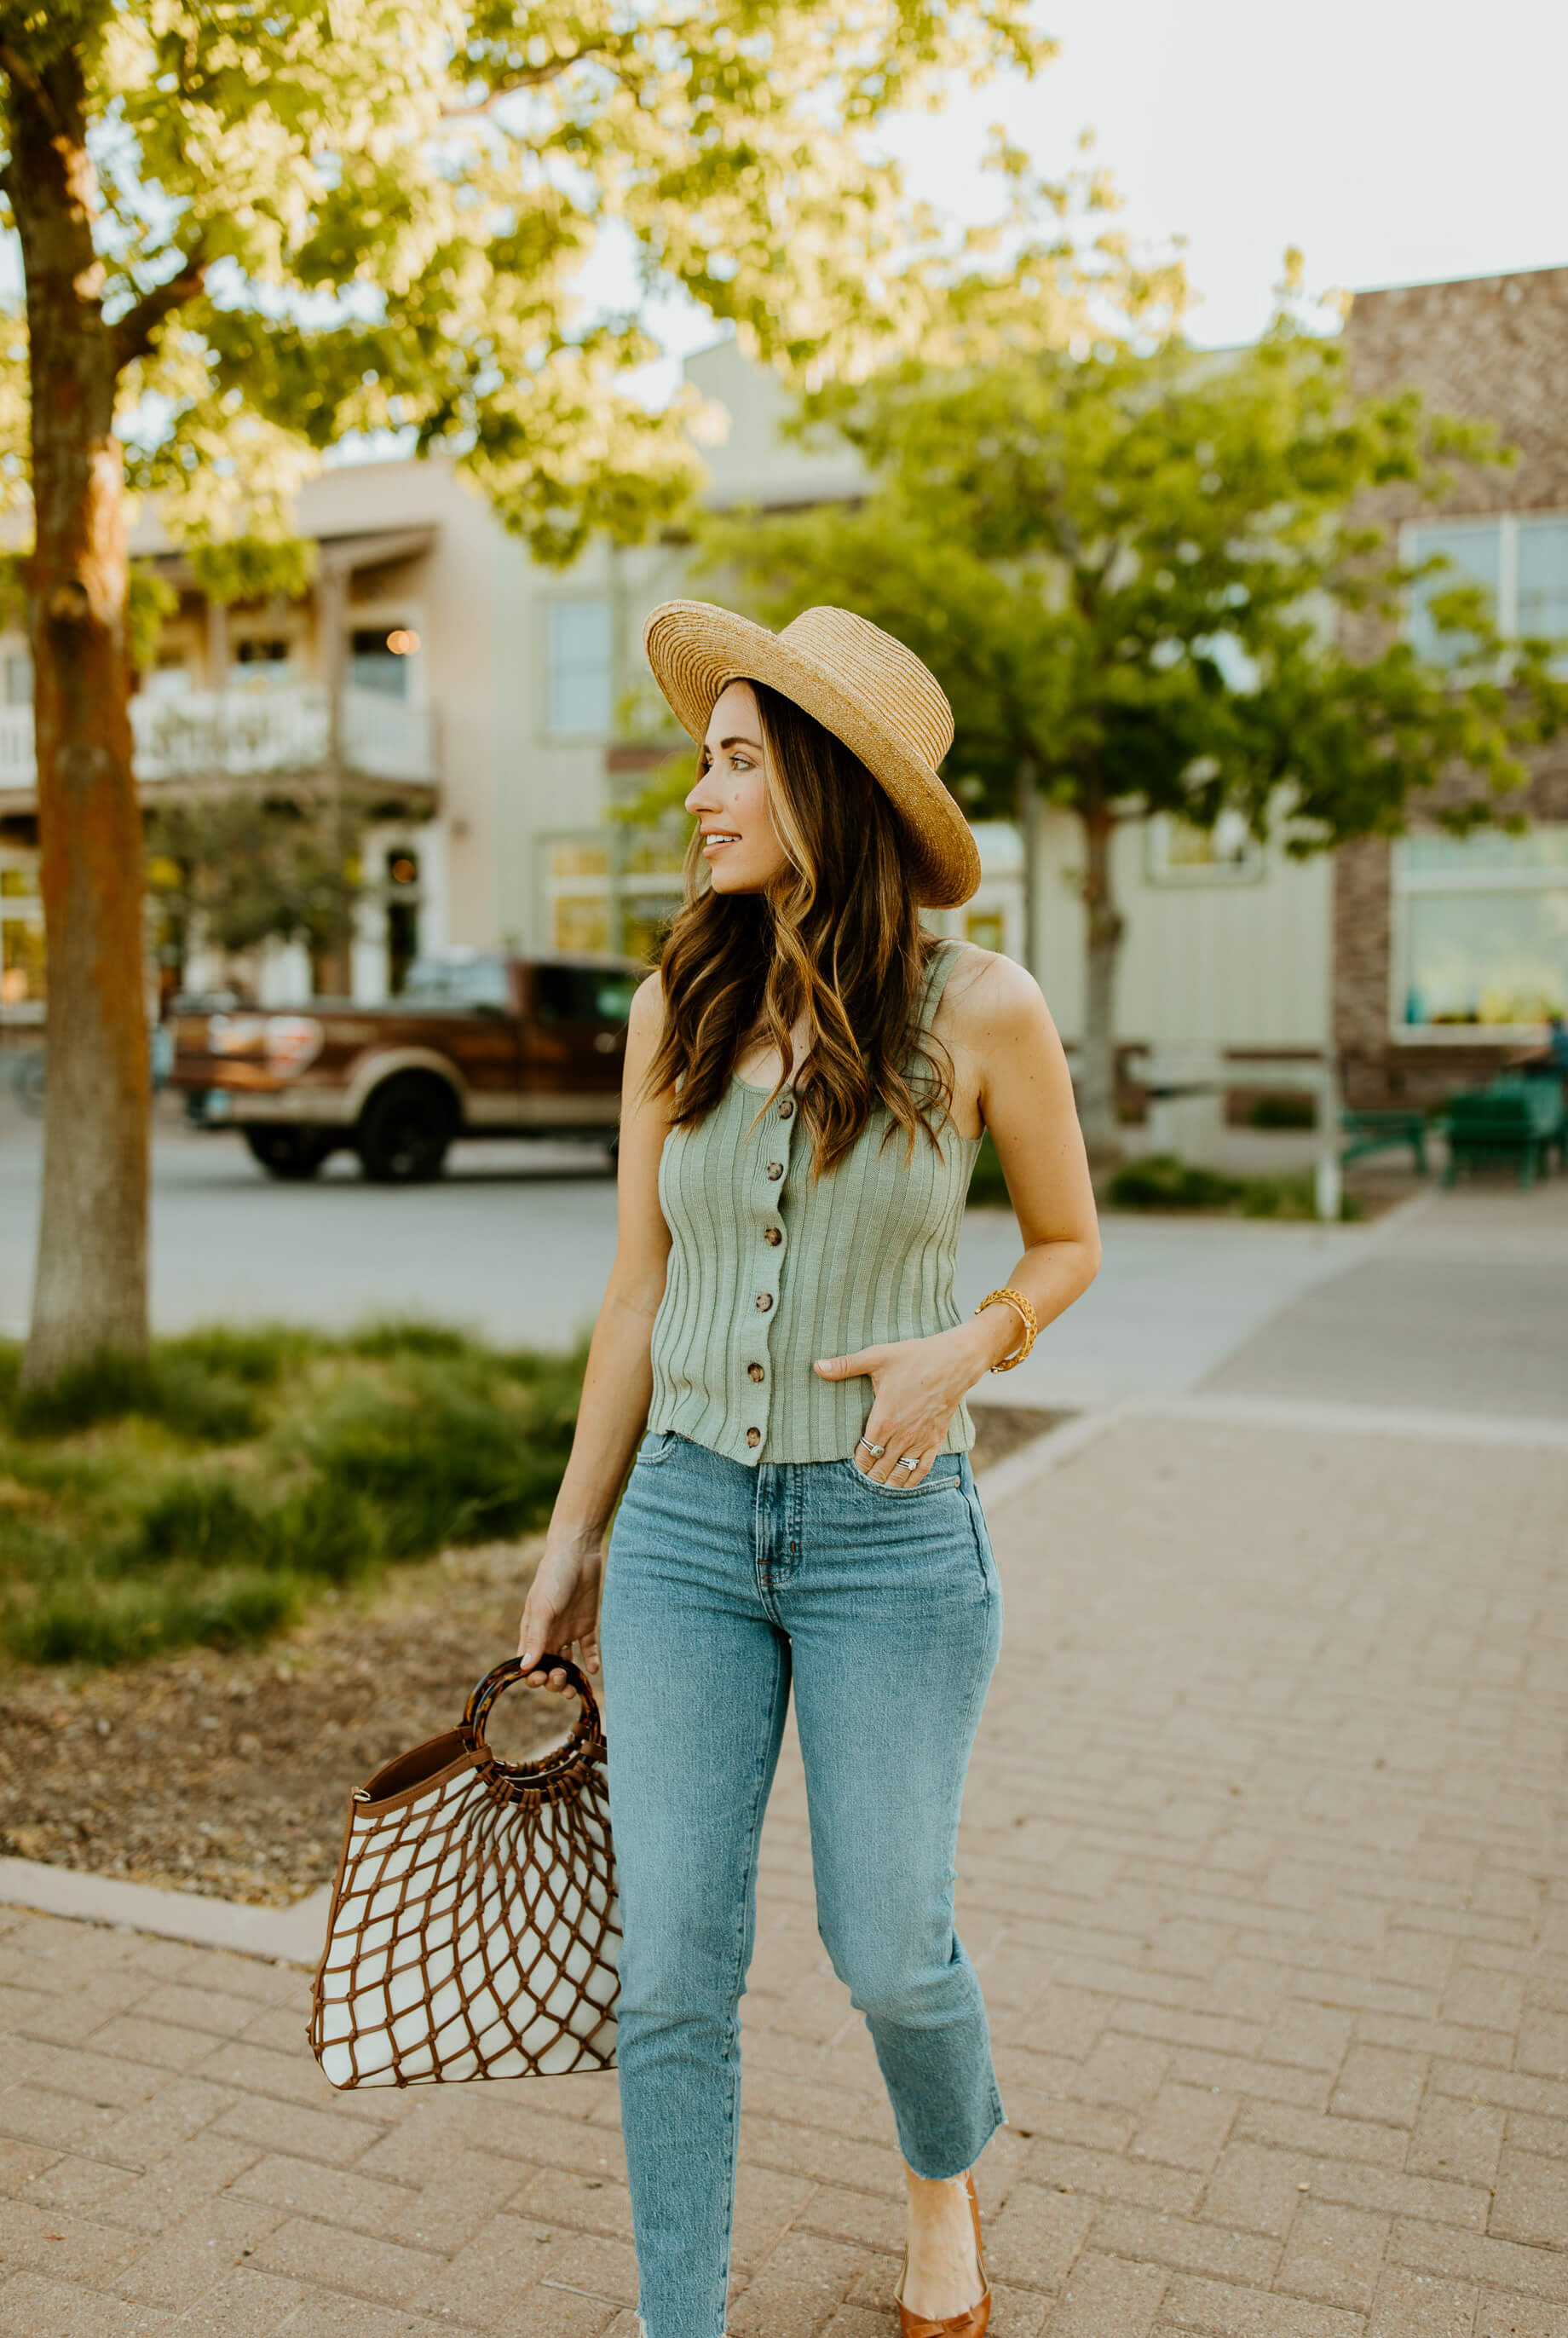 effortless and casual mom style outfit - M Loves M @marmar